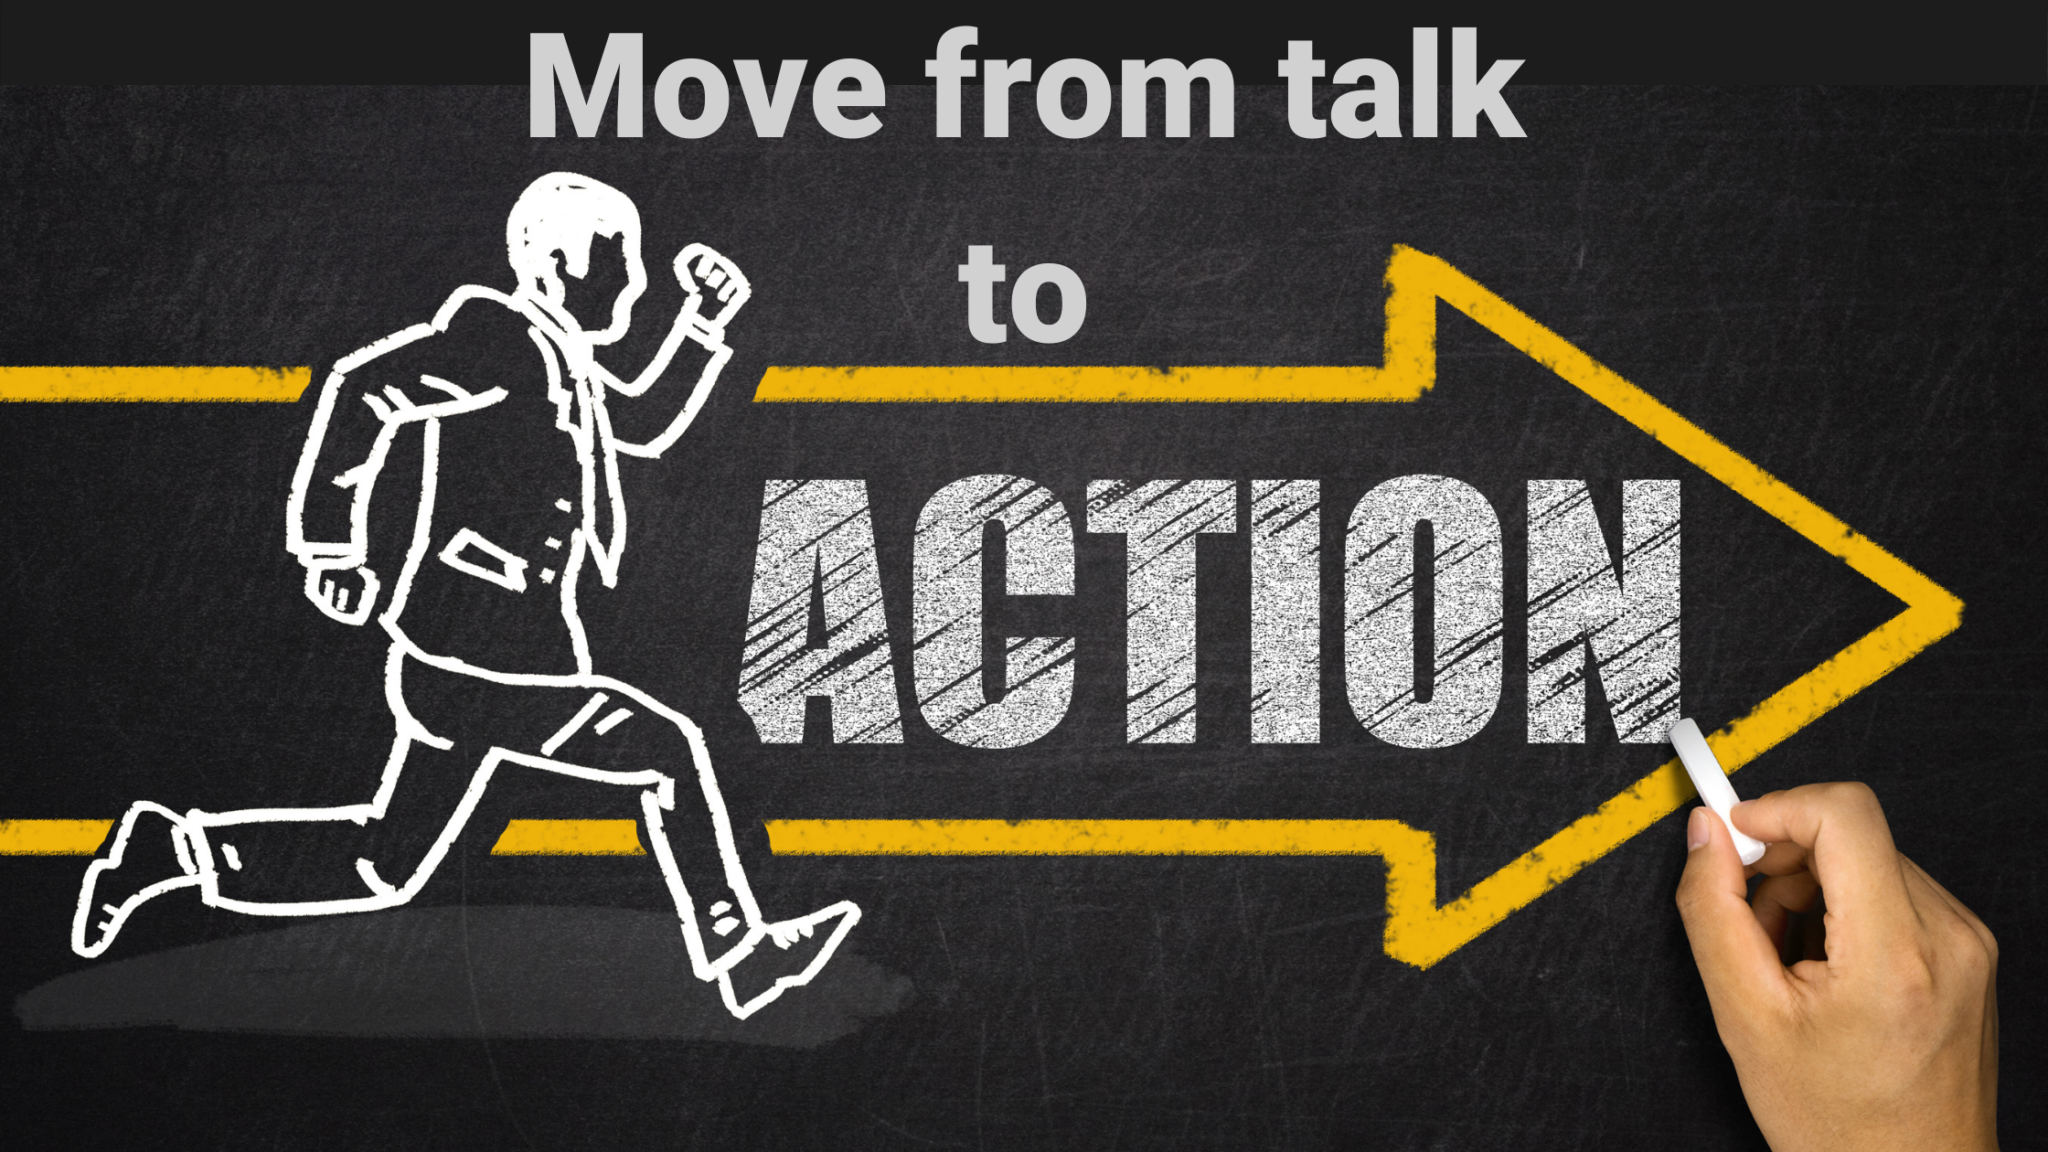 Jim Knight's advice for moving from talk to action